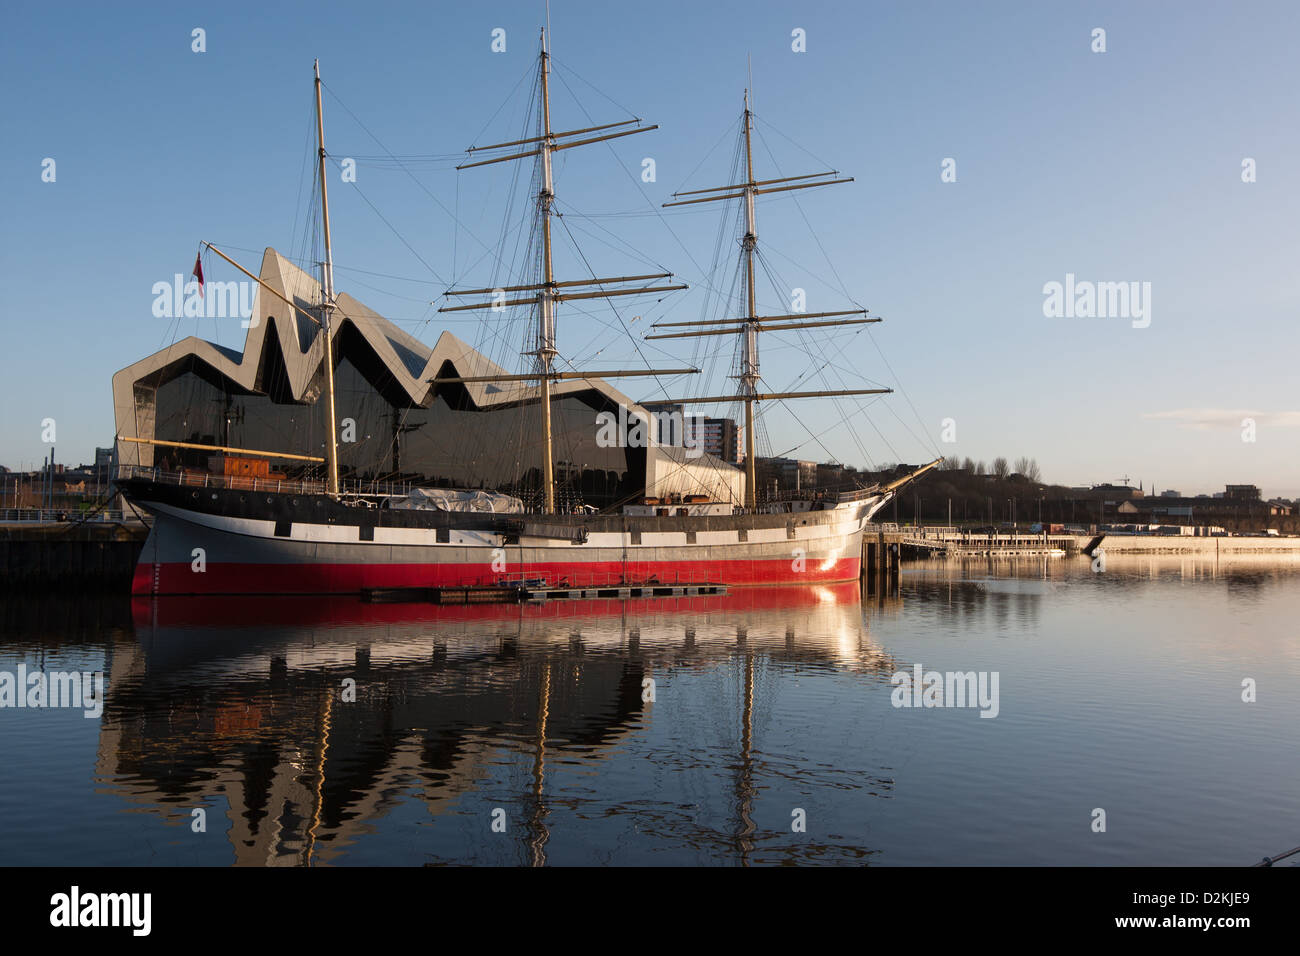 Riverside Museum, with the Glenlee tall ship, in Glasgow, Scotland. - Stock Image